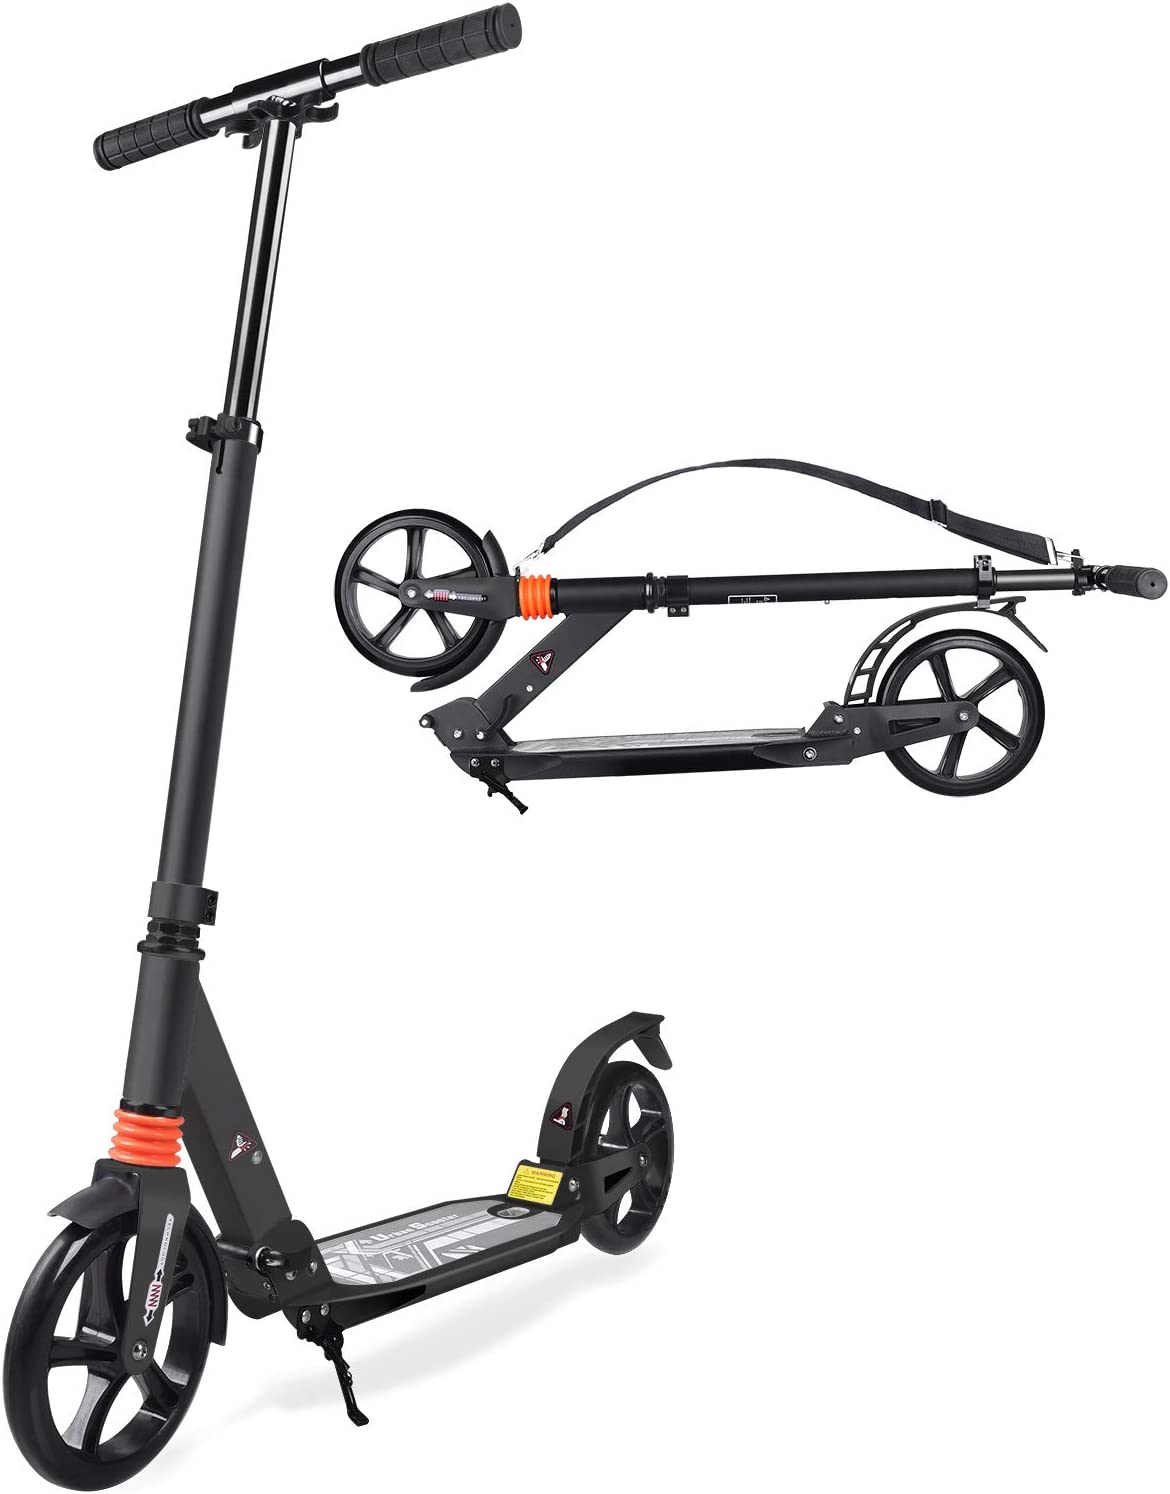 TABKEER Scooter for Adults Teens – Aluminum Alloy Foldable Adult Scooter Adjustable Height Handlebars and Kickstand with 8 inches Big Wheels Lightweight Scooters Gift for Family